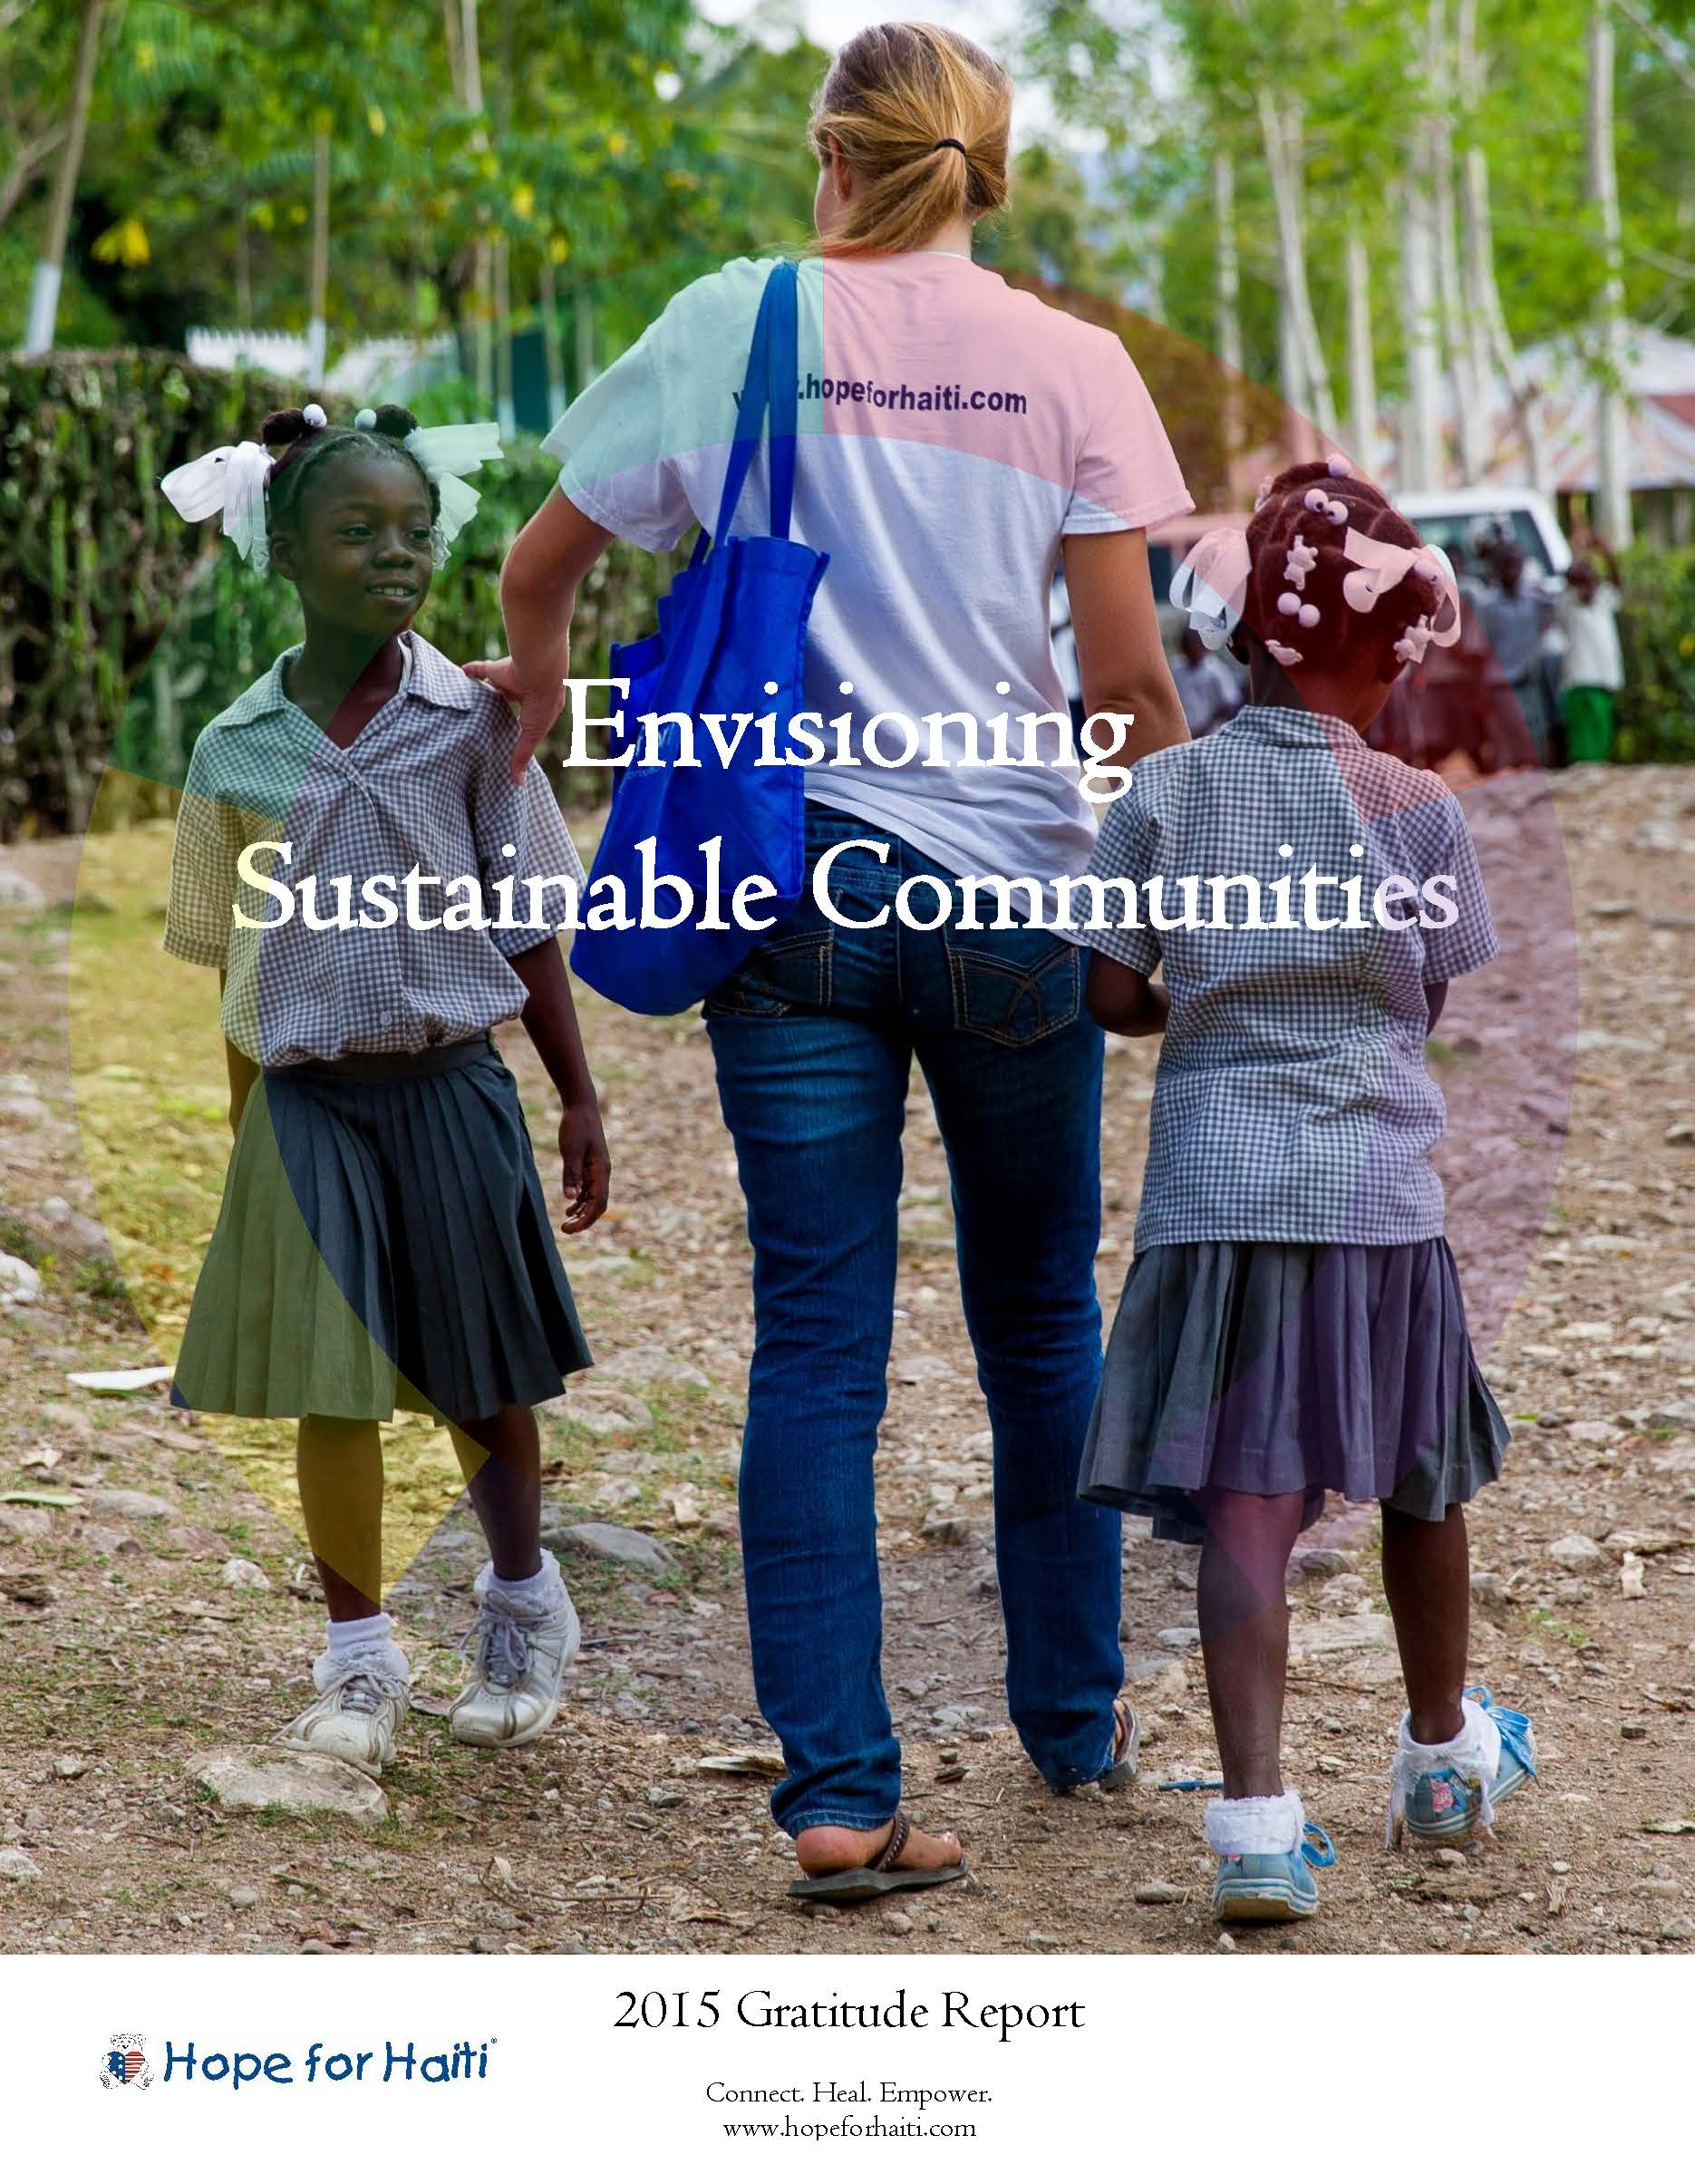 Envisioning Sustainable Communities